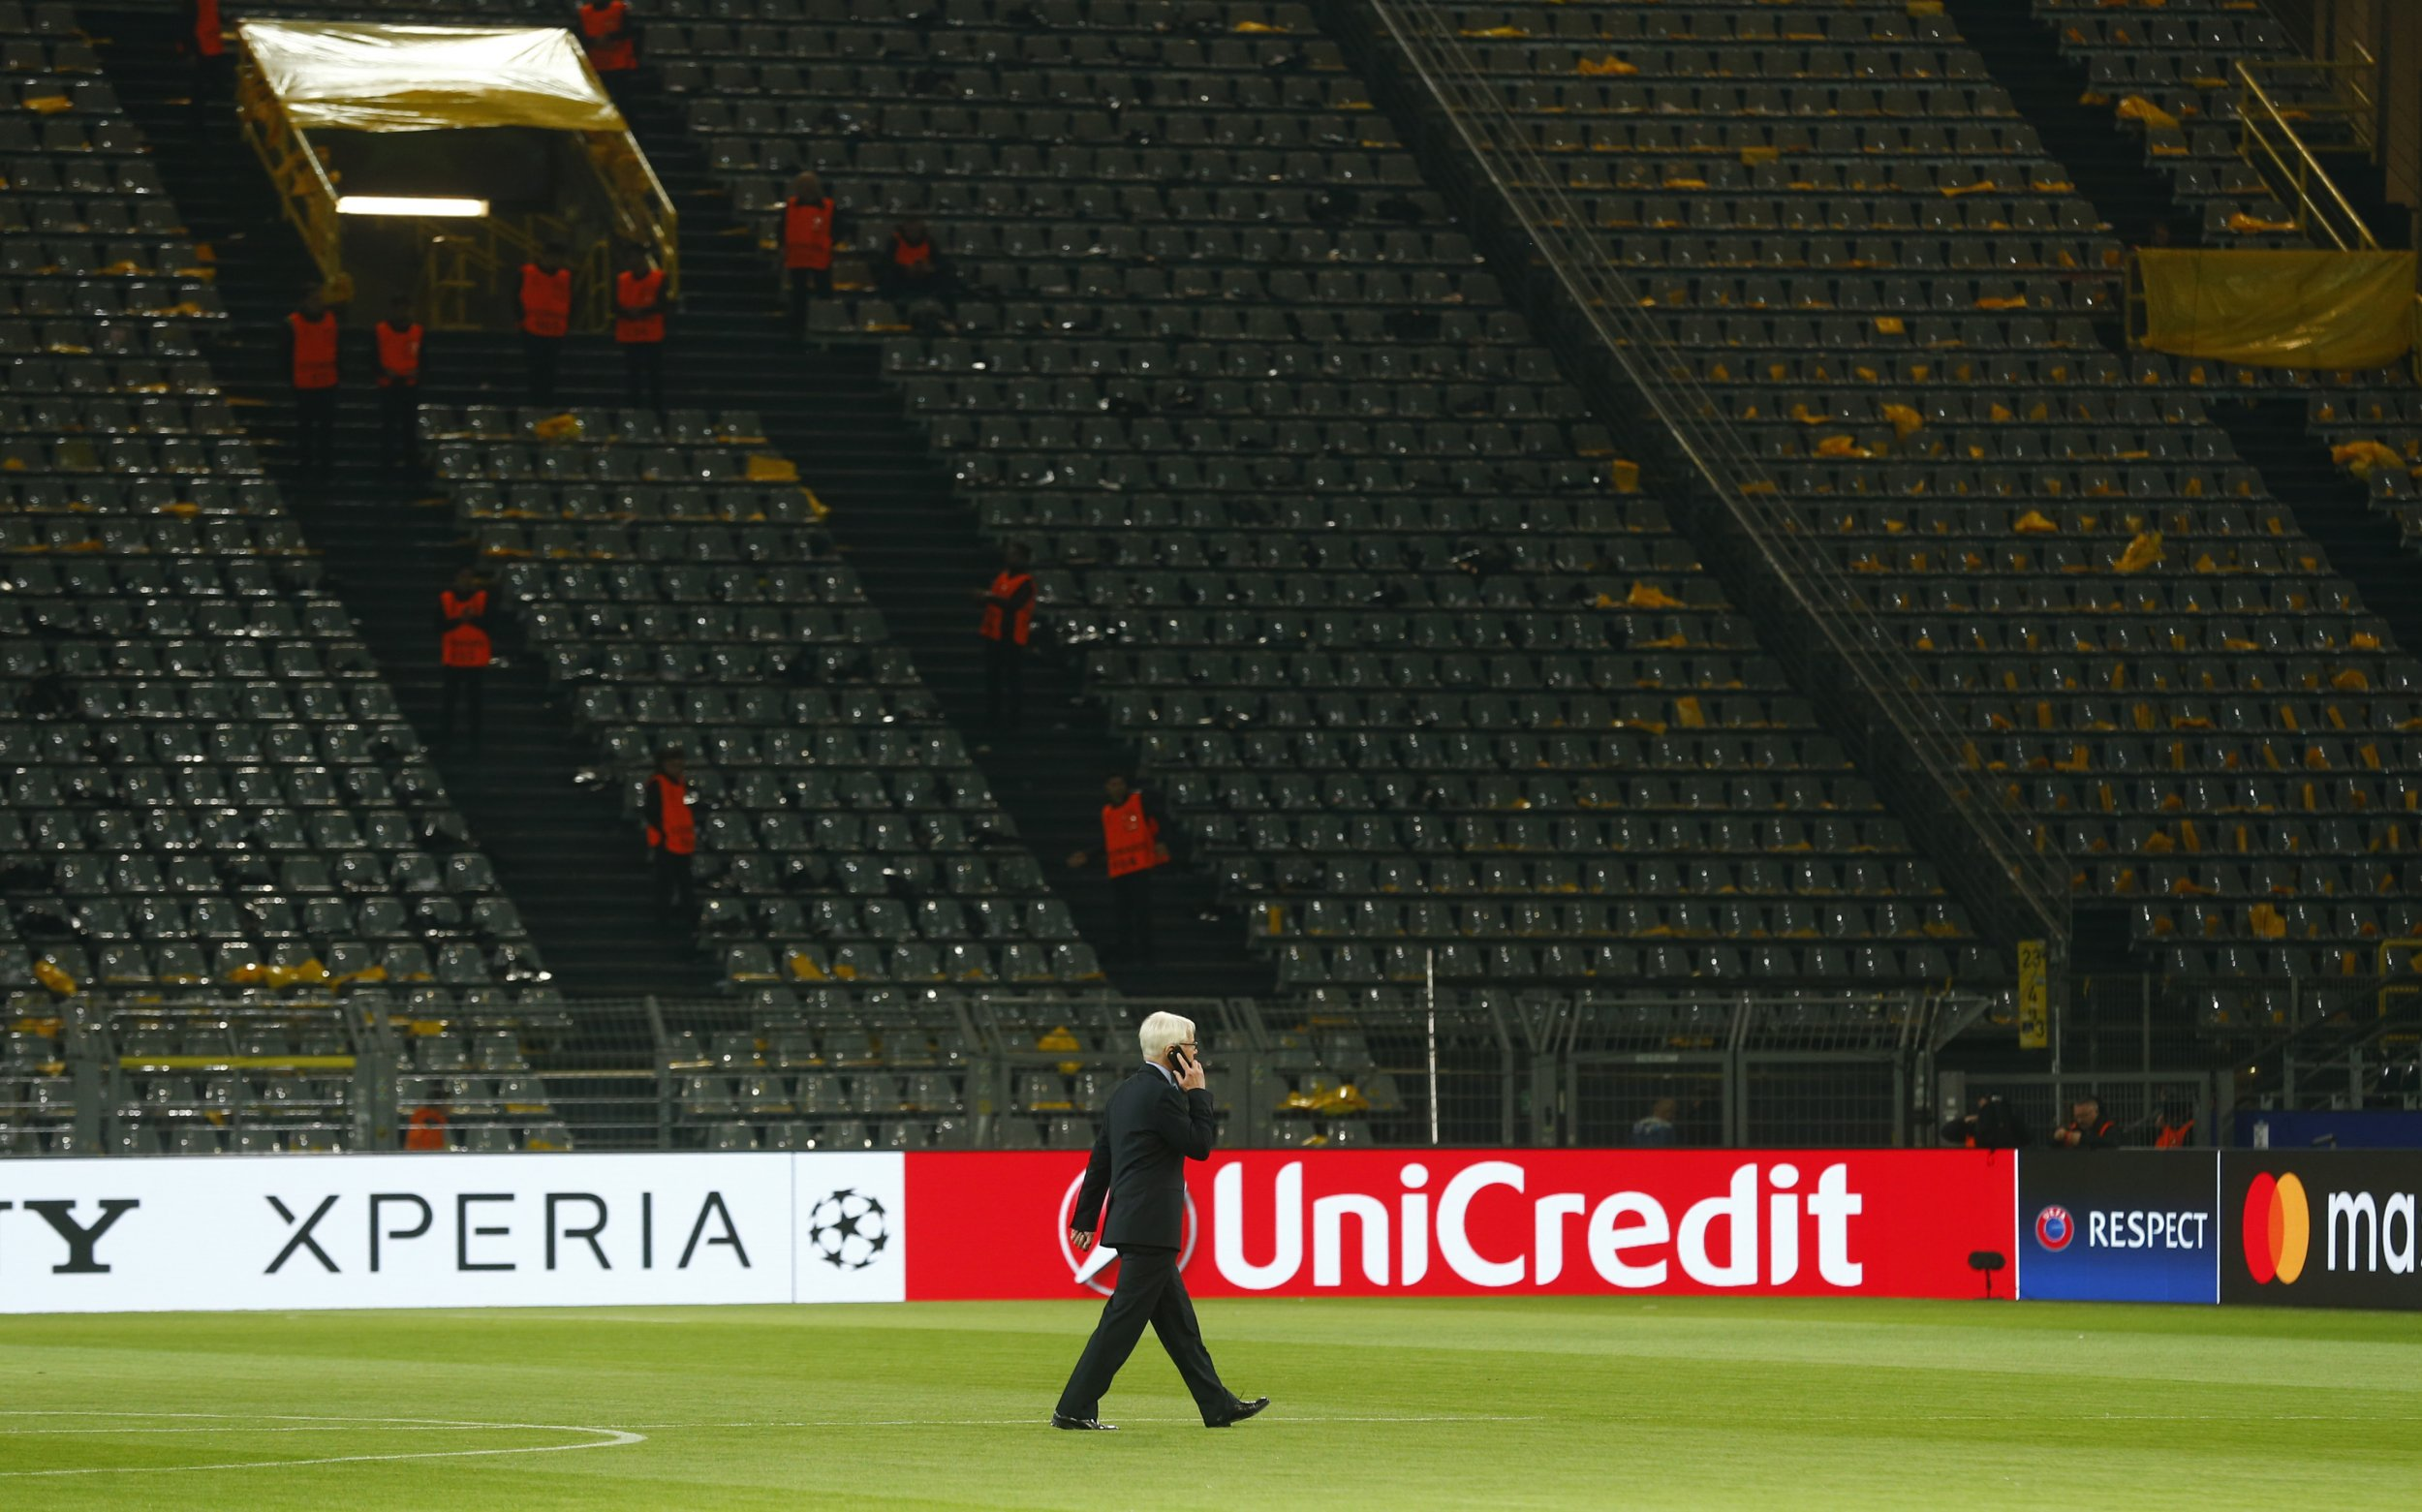 President of Borussia Dortmund Reinhard Rauball on the pitch at Signal Iduna Park, Germany, April 11.